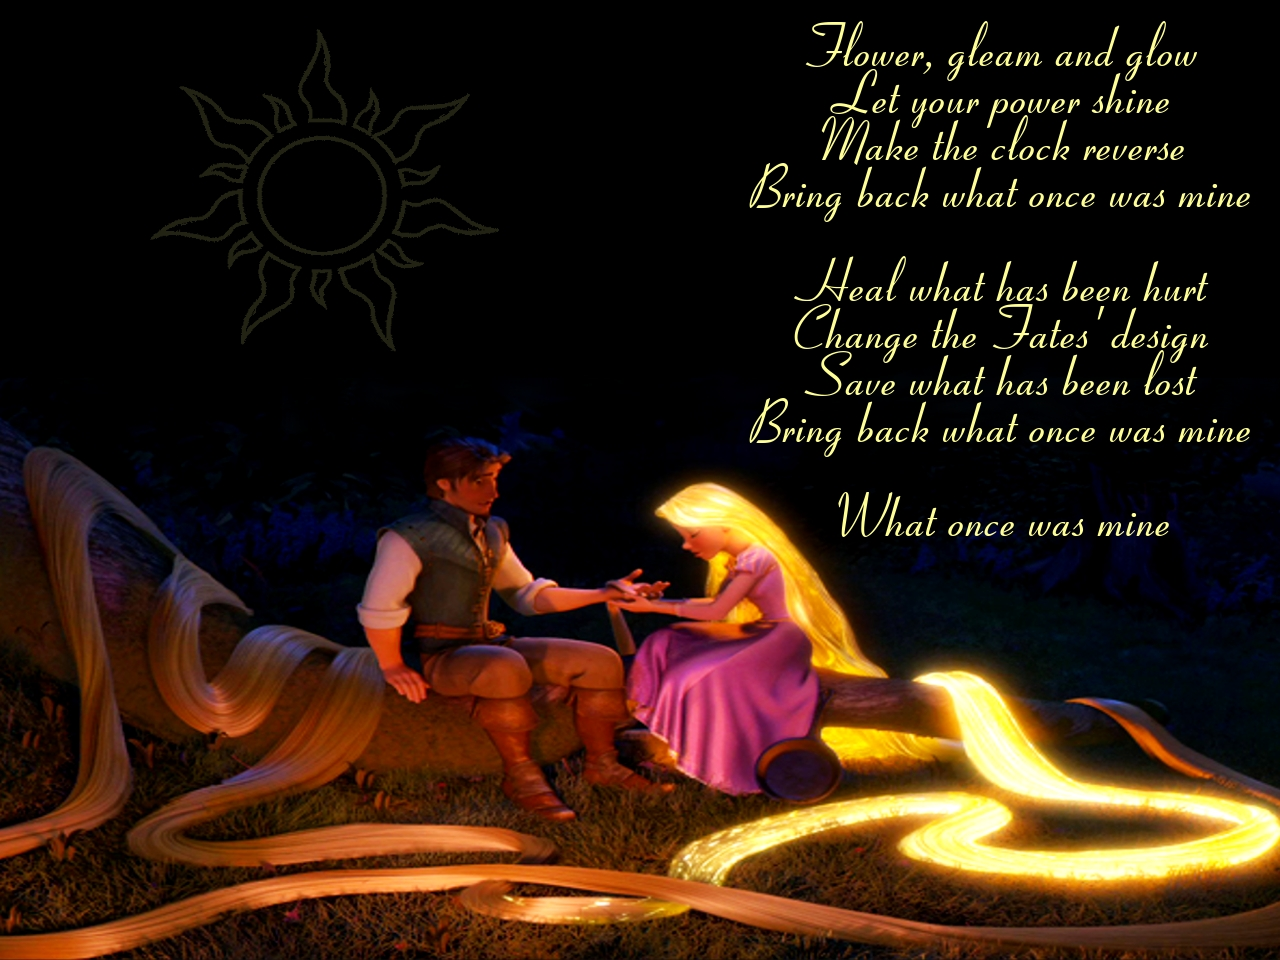 Disney Tangled Healing incantation by rapunzelhime wallpapers for Disney ta